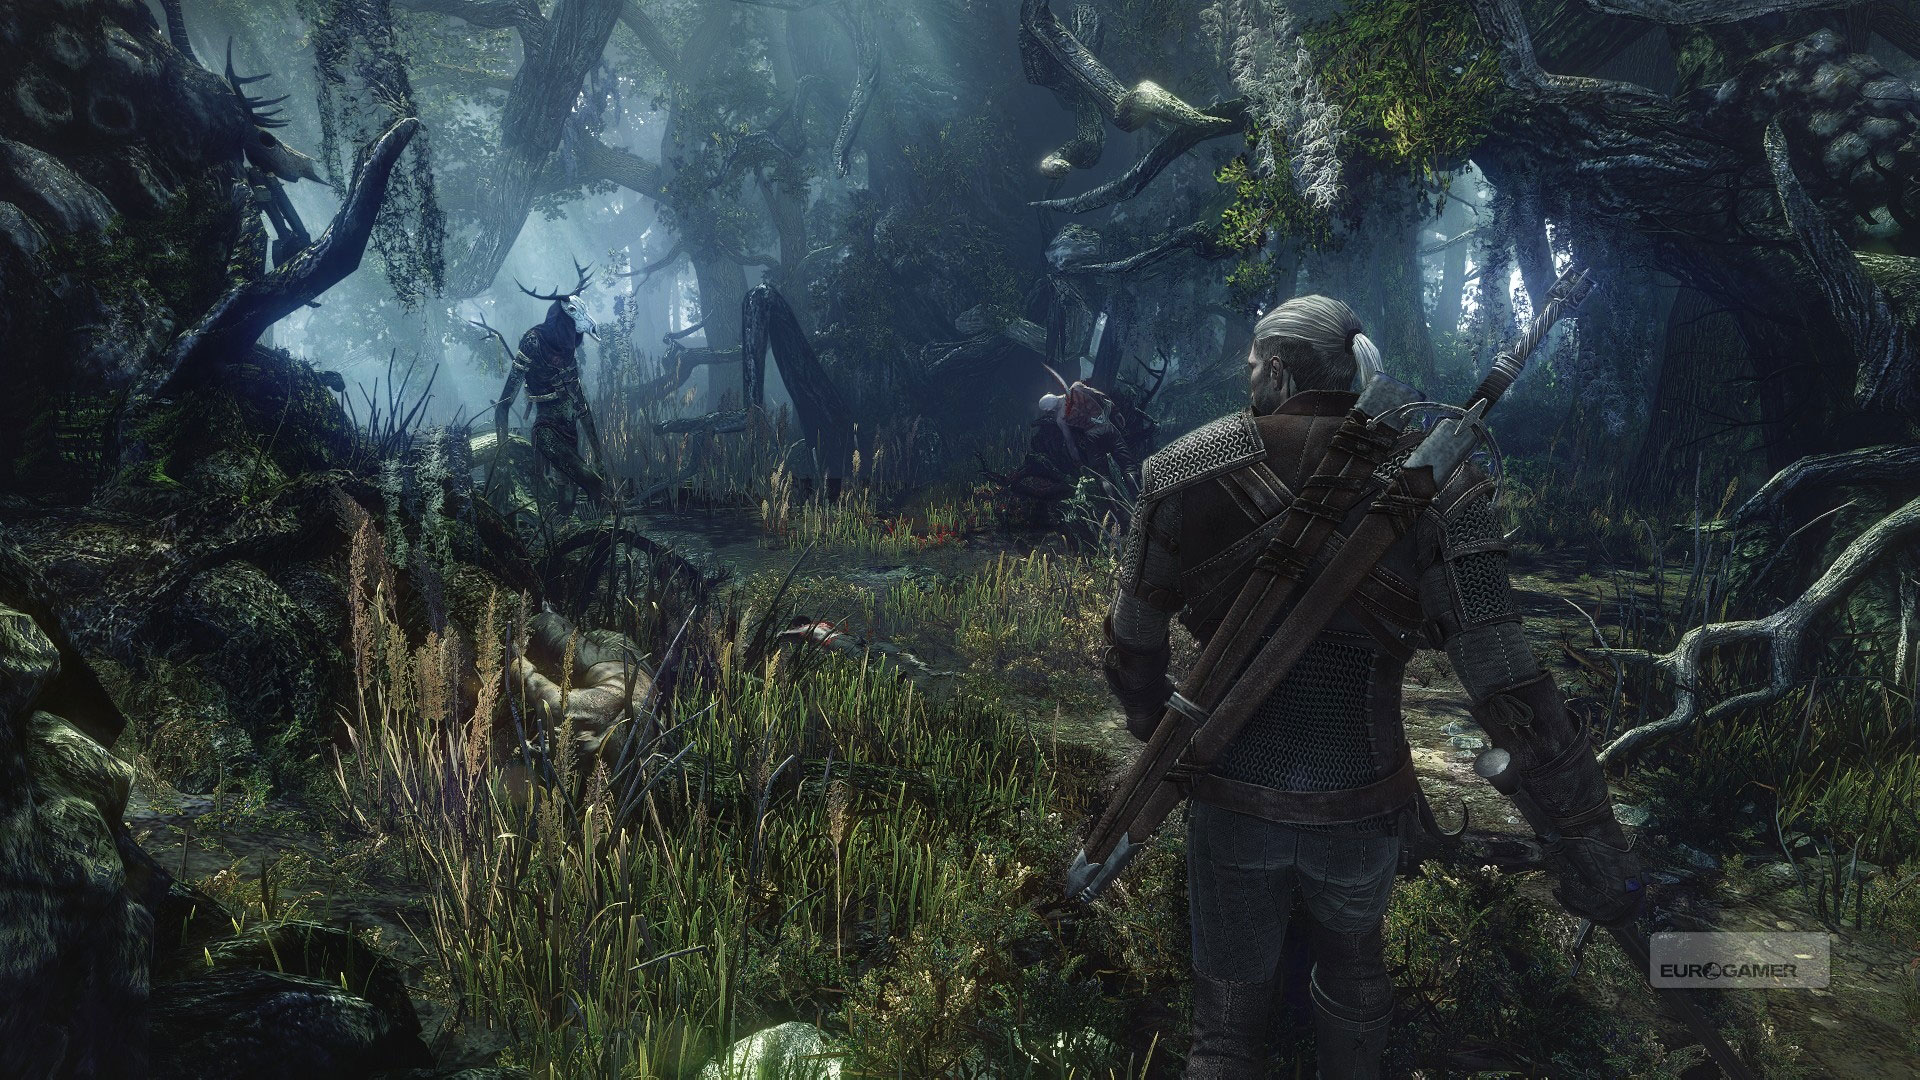 pre_1375210256__1371178370_leshen_is_a_v